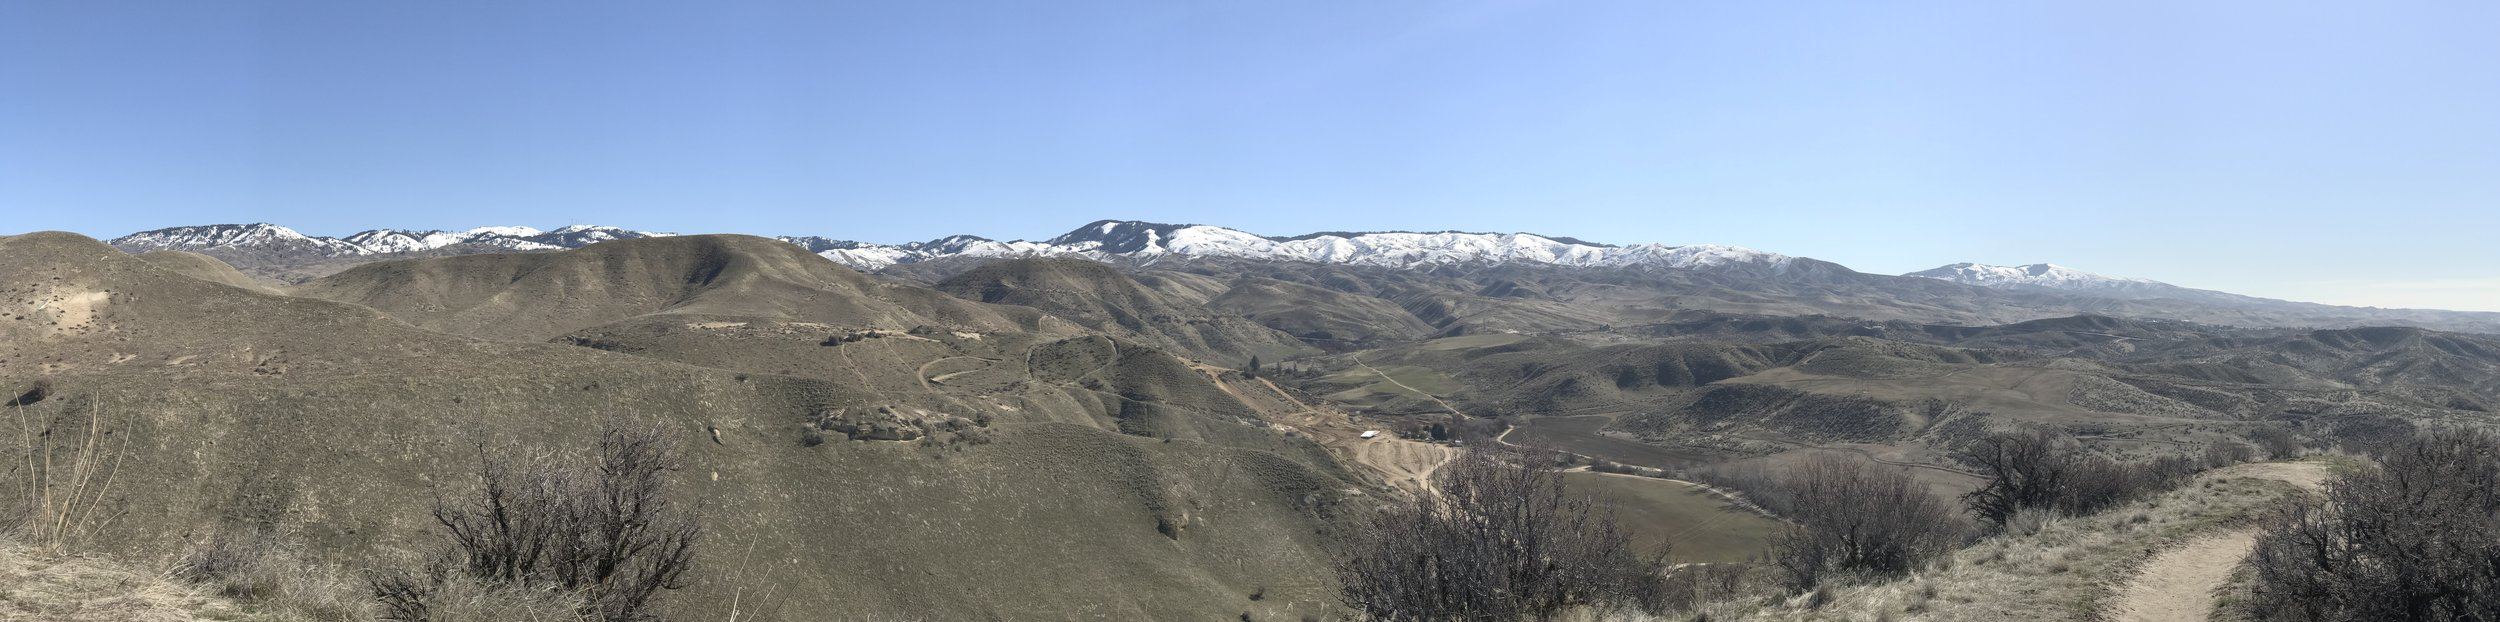 View of Boise Foothills from the Polecat Trail Loop